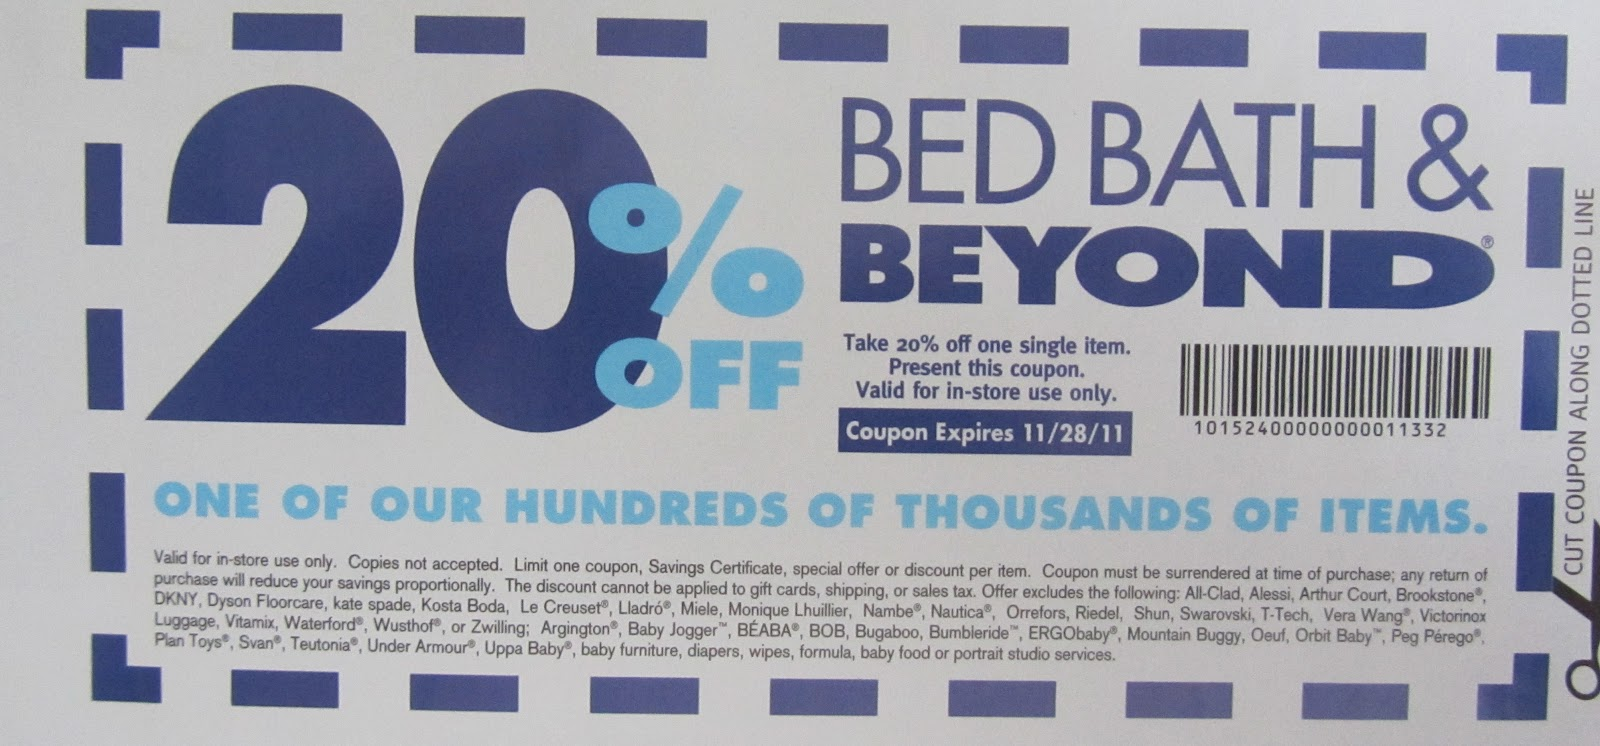 Does Bed Bath Beyond Take Expired Coupons